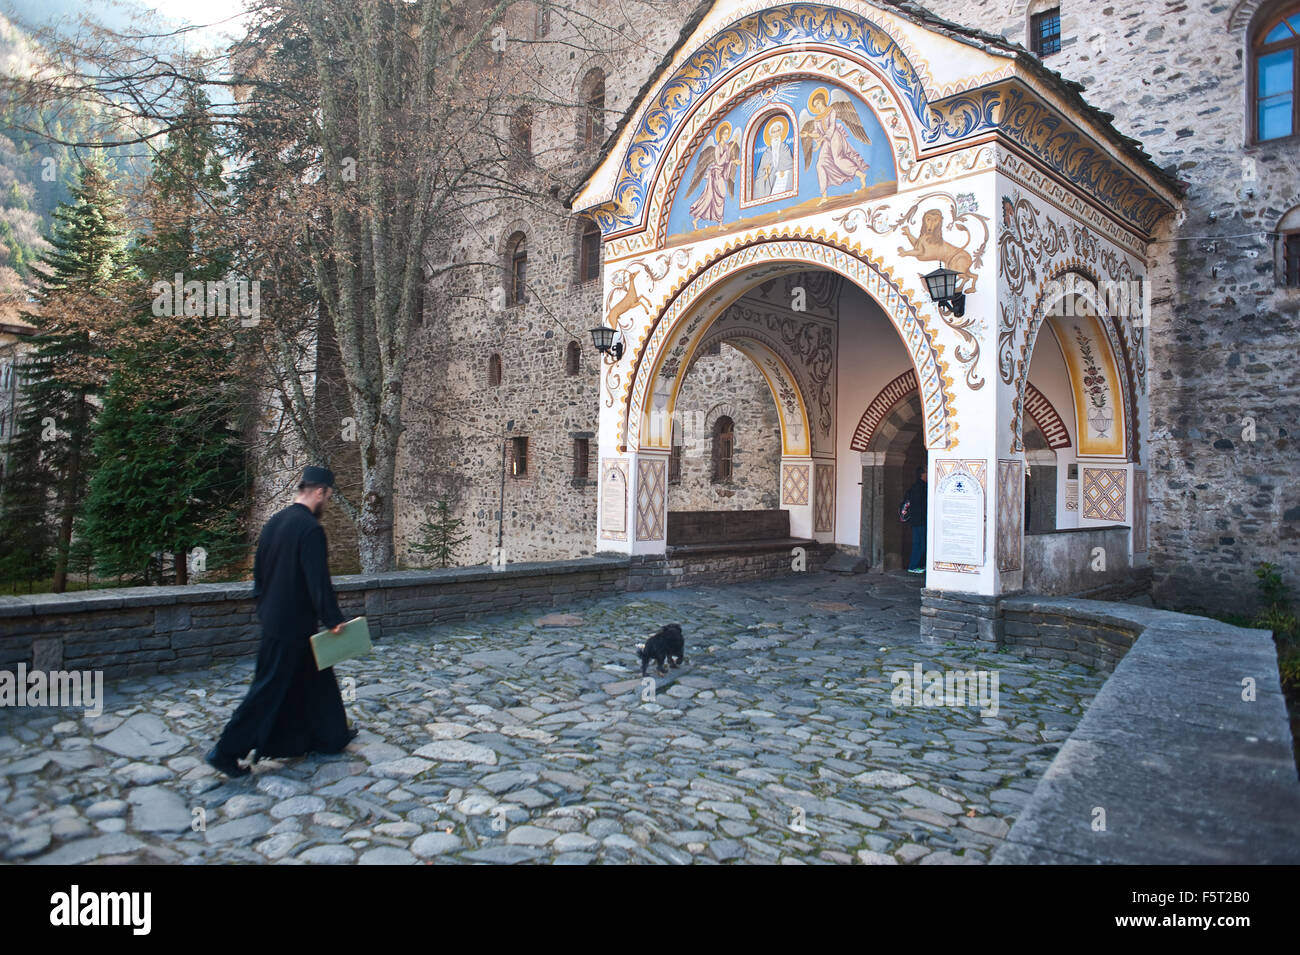 Orthodox monasticism: a selection of sites